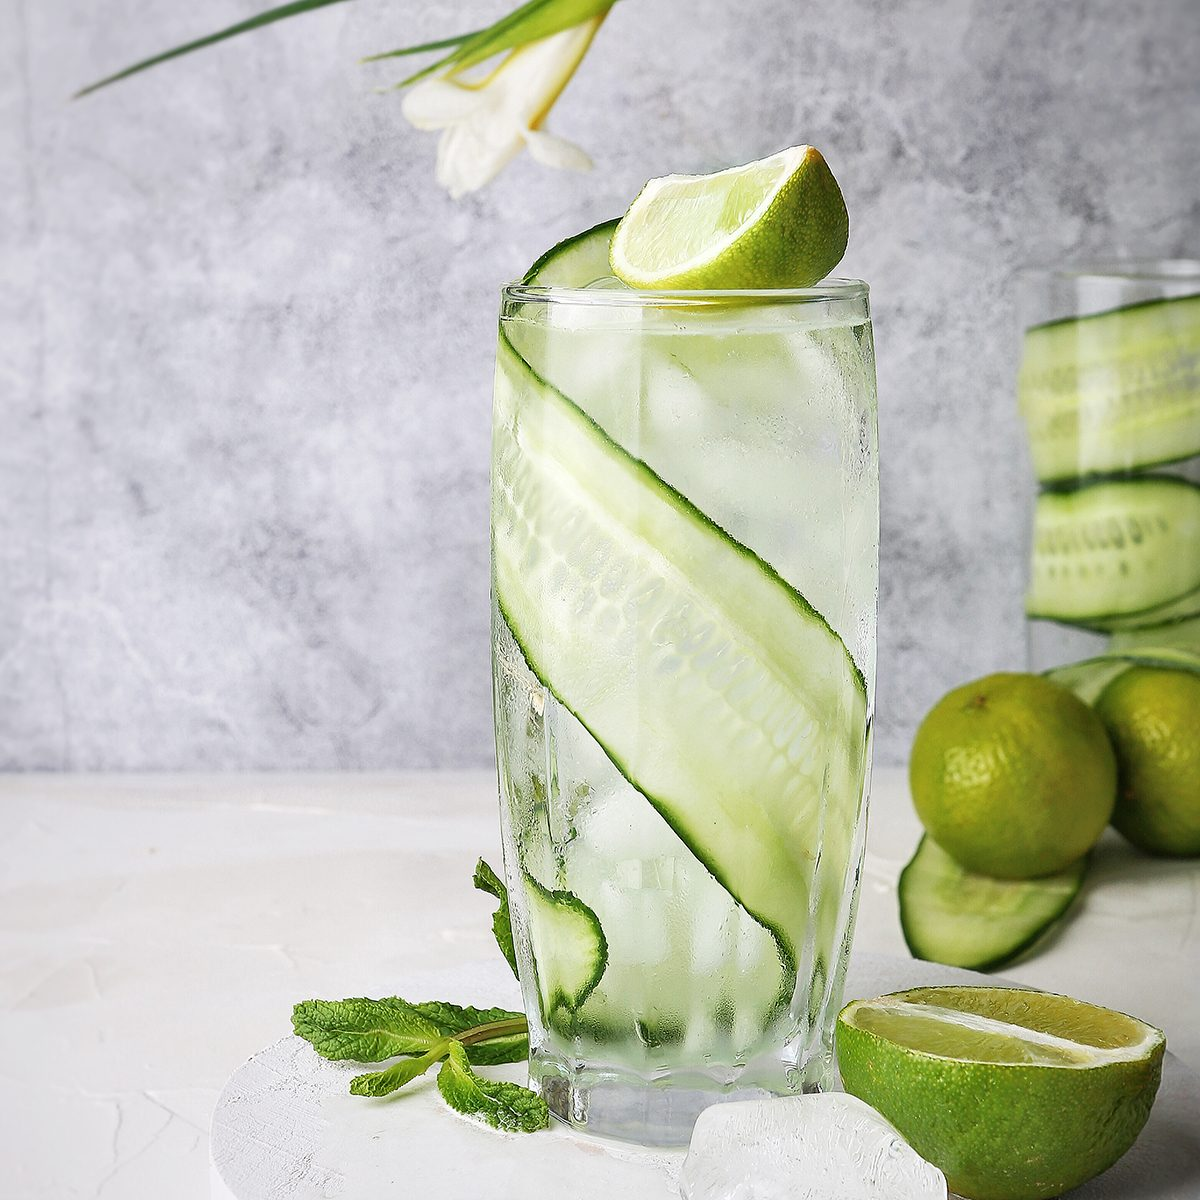 Cocktail with cucumber and lime fresh ice tonic summer alcohol green transparent on the table drink refreshing bar; Shutterstock ID 1437877766; Job (TFH, TOH, RD, BNB, CWM, CM): TOH